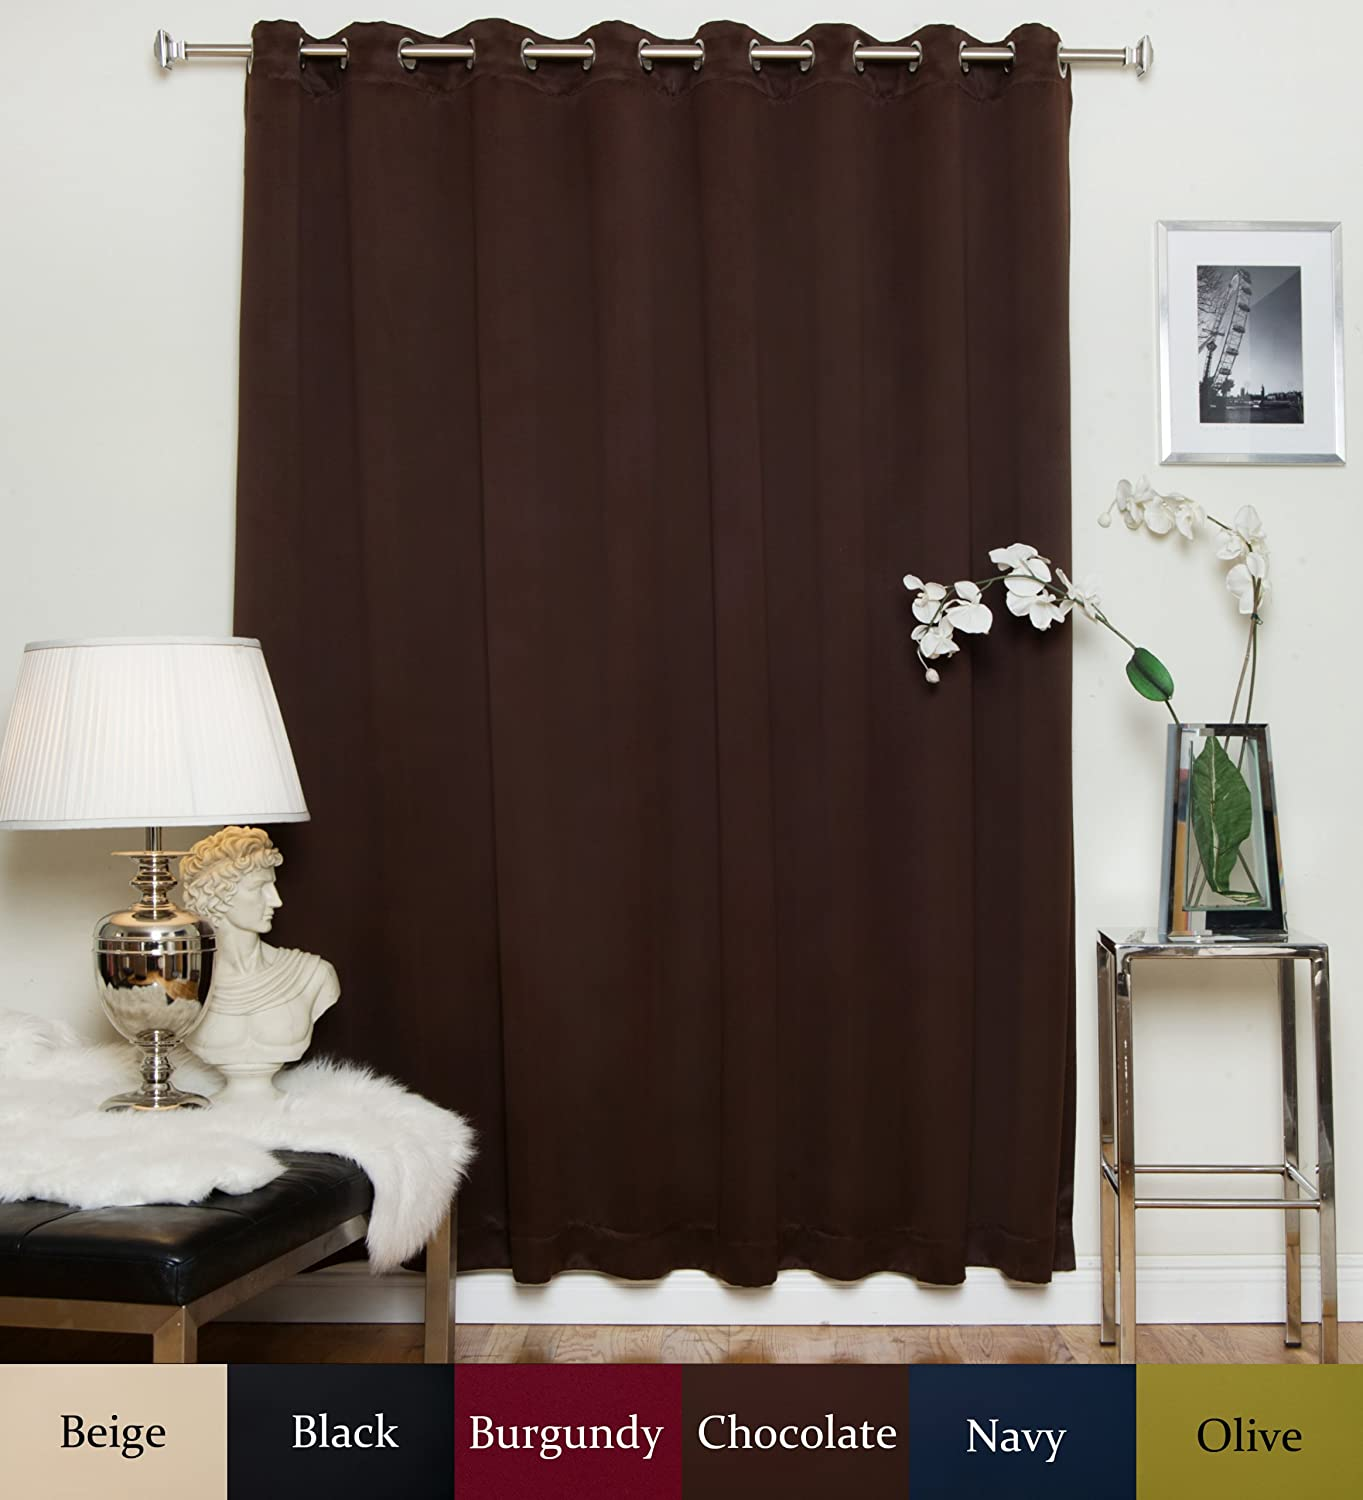 Blackout Curtain Chocolate Wide Width Nickel Grommet Top Thermal Insulated 100 Inch Wide by 120 Inch Long Panel